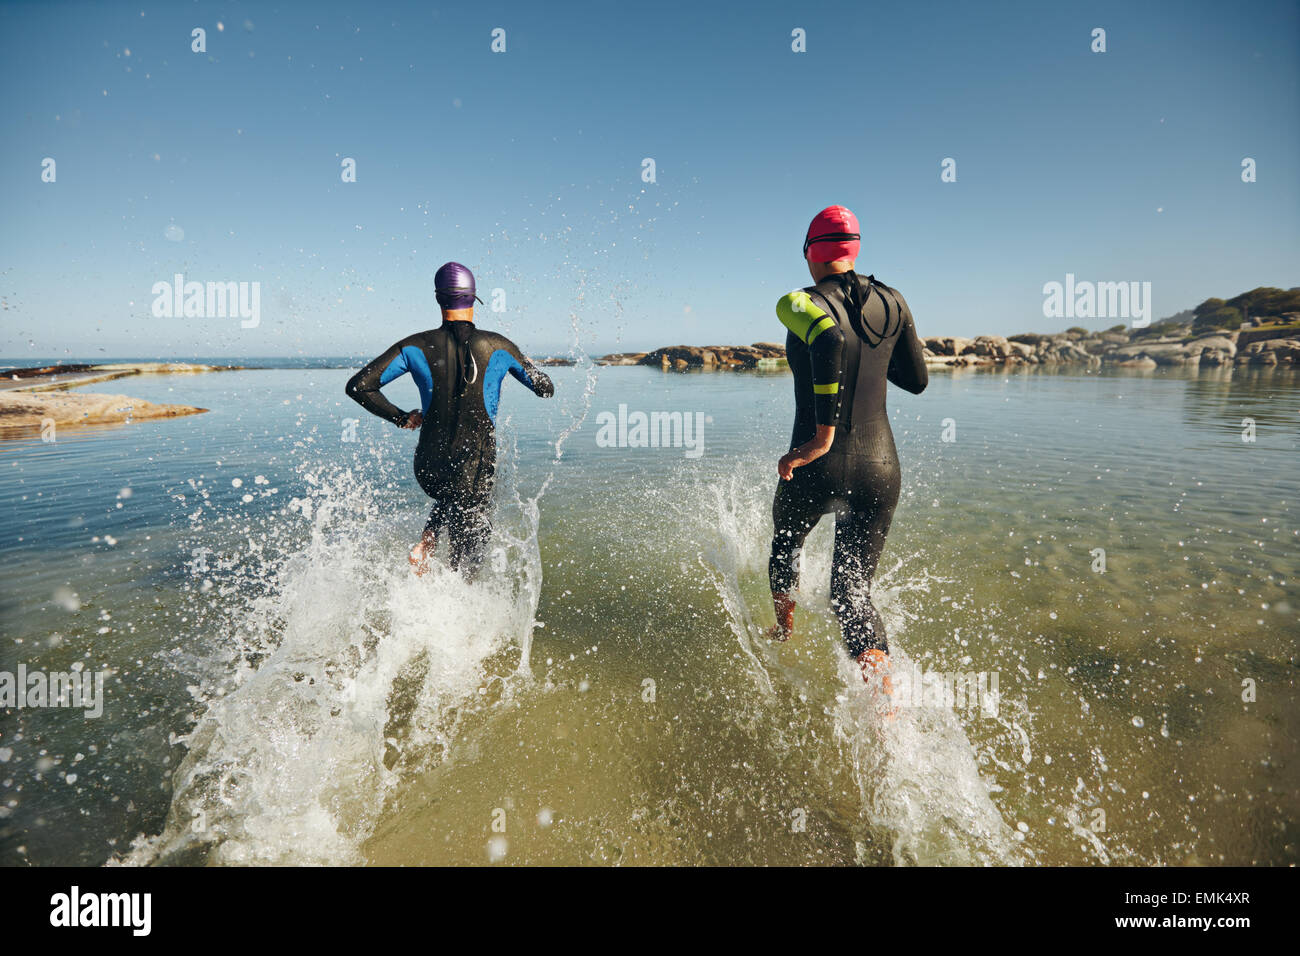 Two athletic swimmers entering the water with their wetsuits on.  Competitors in wet suits running into the water - Stock Image